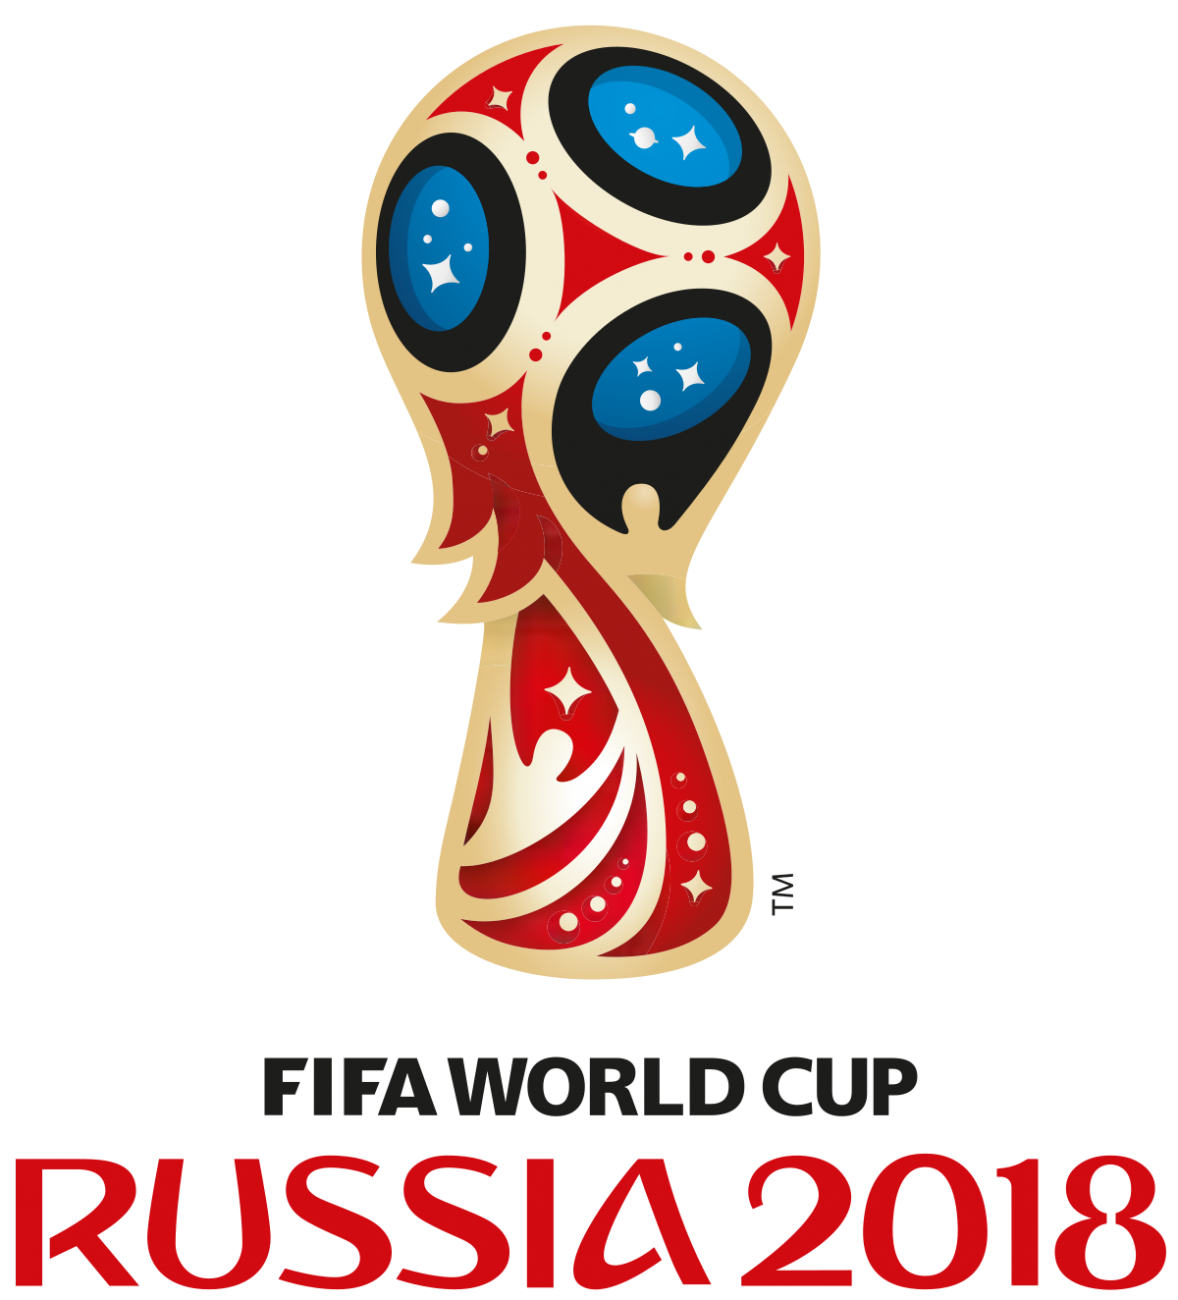 1200px-2018_FIFA_World_Cu-1526361913.png